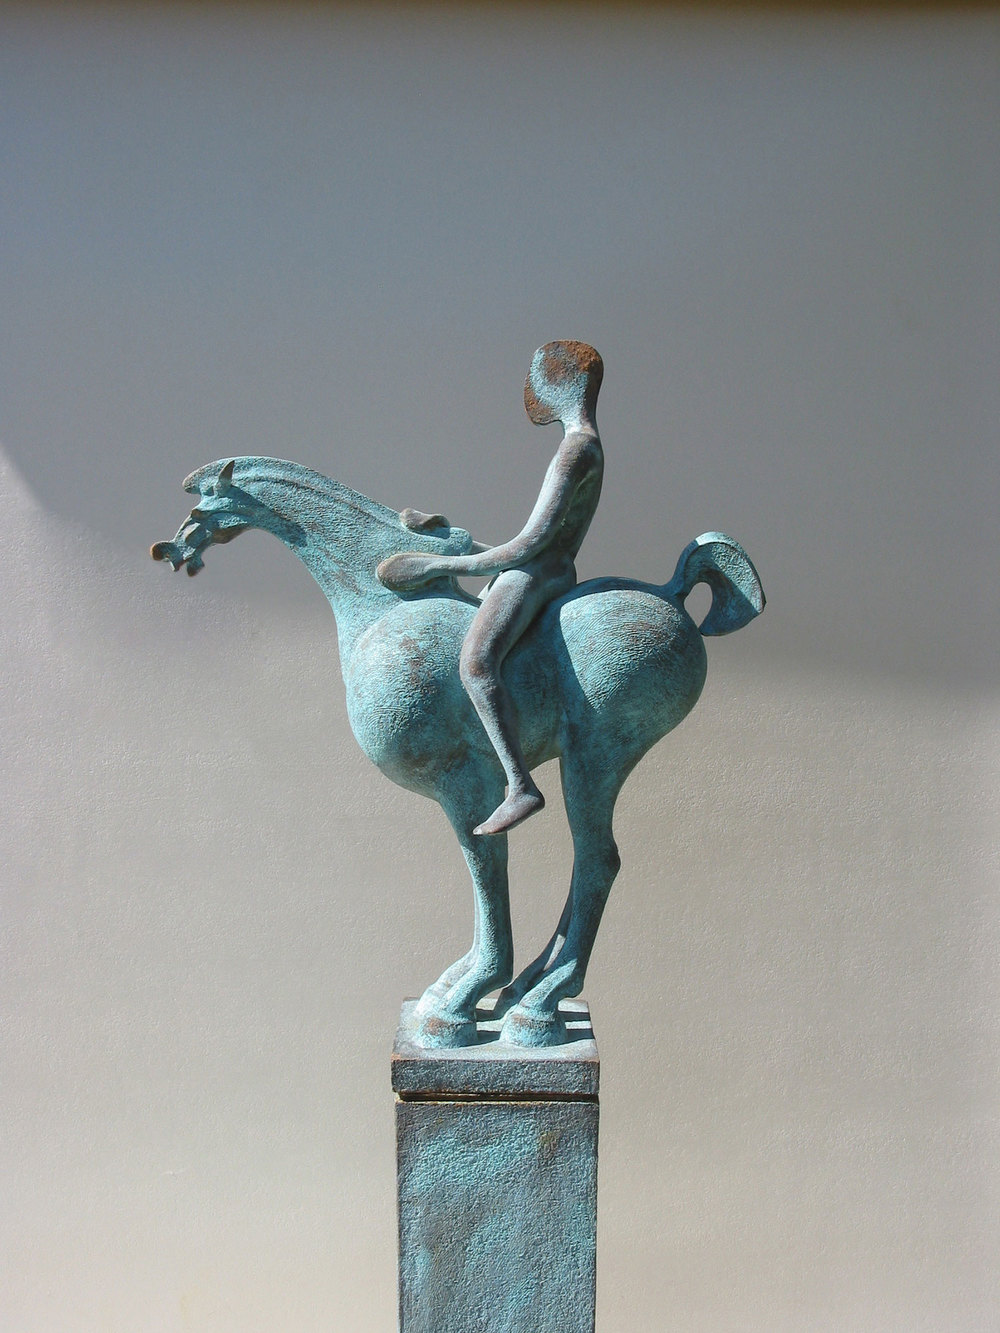 Chloros   ©  126 cm high x 50 cm wide  Unique  Chlorus - Greek lexicon for pale green. The piece takes its energy from a Chinese dynamic, though paradoxically it is hauntingly still.  The horse's head is diminutive - a classical technique which enhances presence in the body.  Though it is not apparent from this angle, viewed face-on, in both Tang Blue and this sculpture, the figure's head is pared down to a mere slice, sitting on the shoulders like a penny - perhaps a gradual path to abstraction.